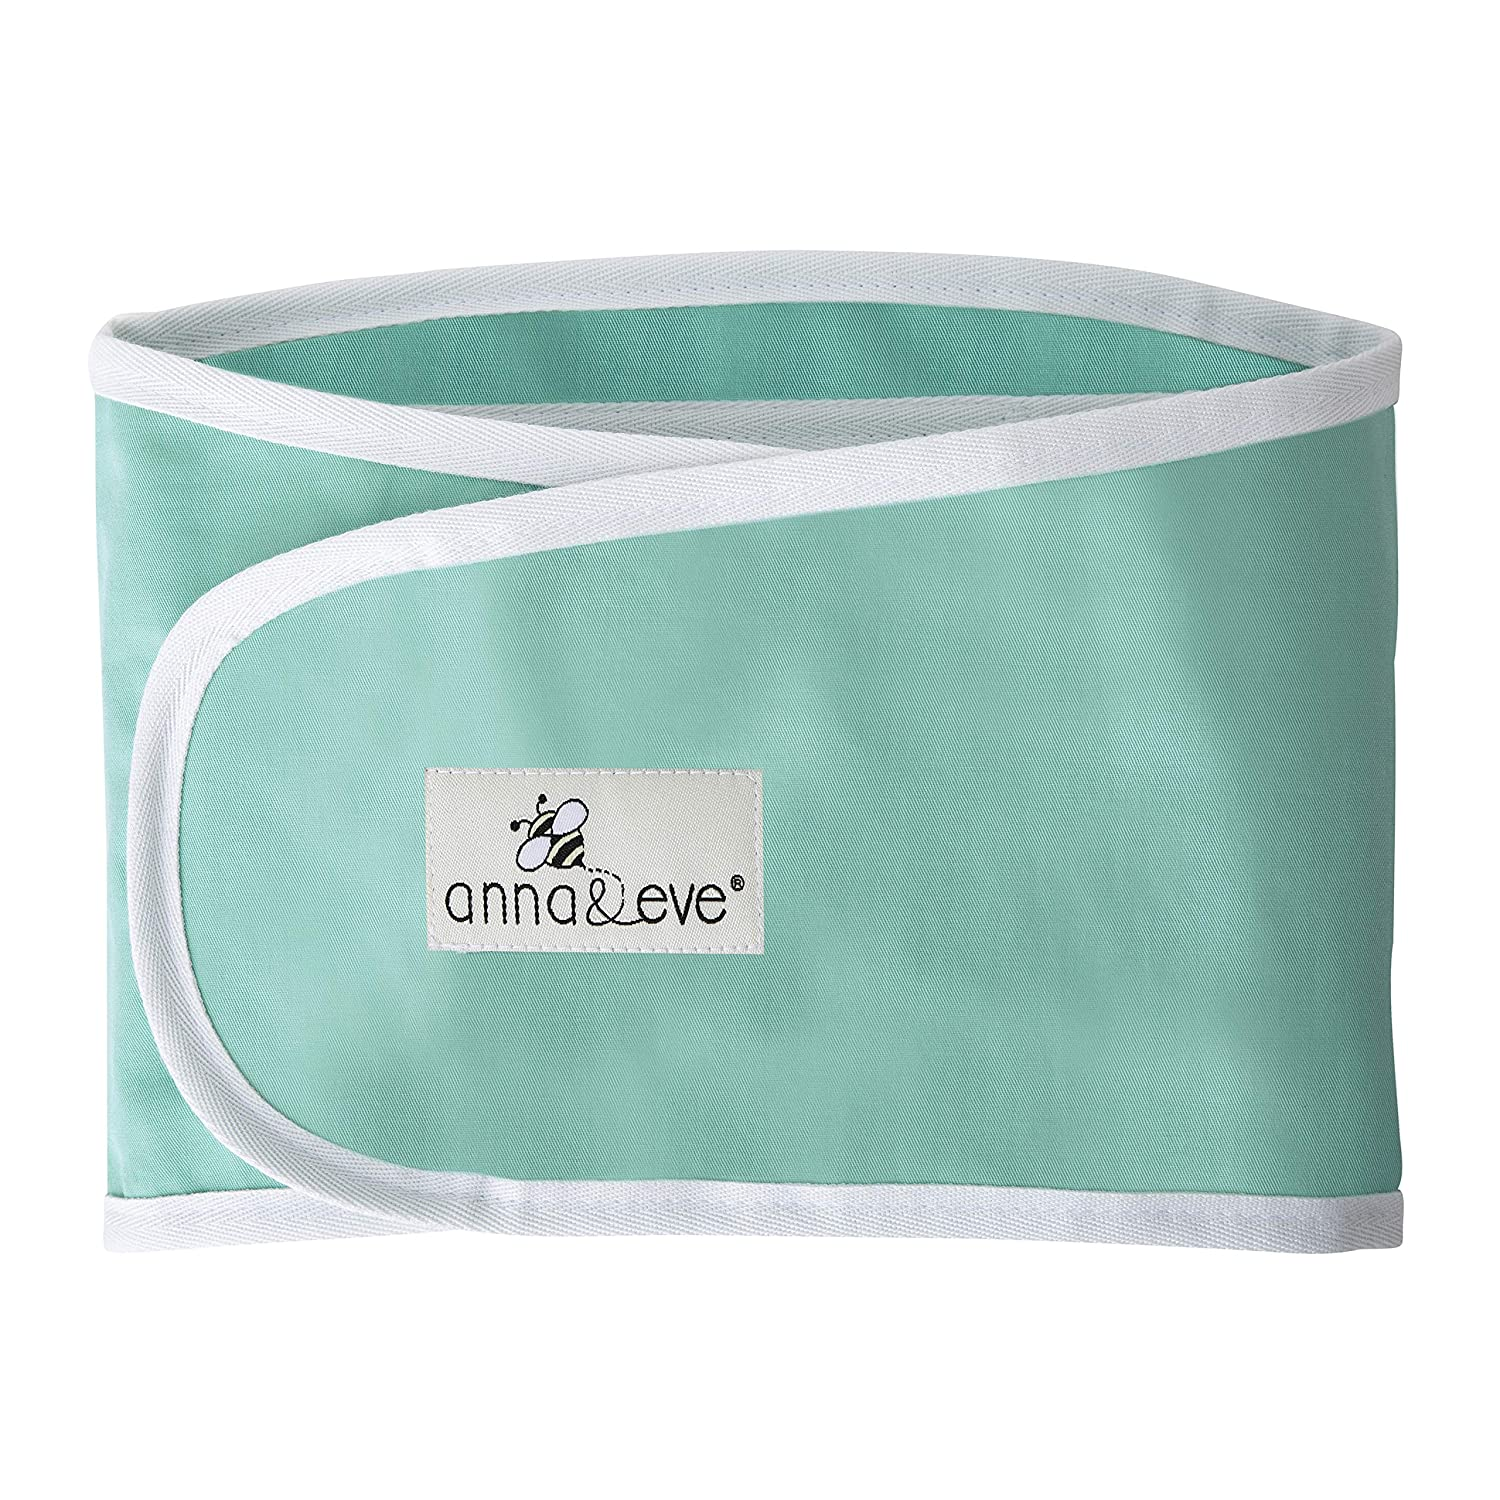 Anna & Eve - Baby Swaddle Strap, Adjustable Arms Only Wrap for Safe Sleeping - Large Size Fits Chest 16 to 20.5, Aqua